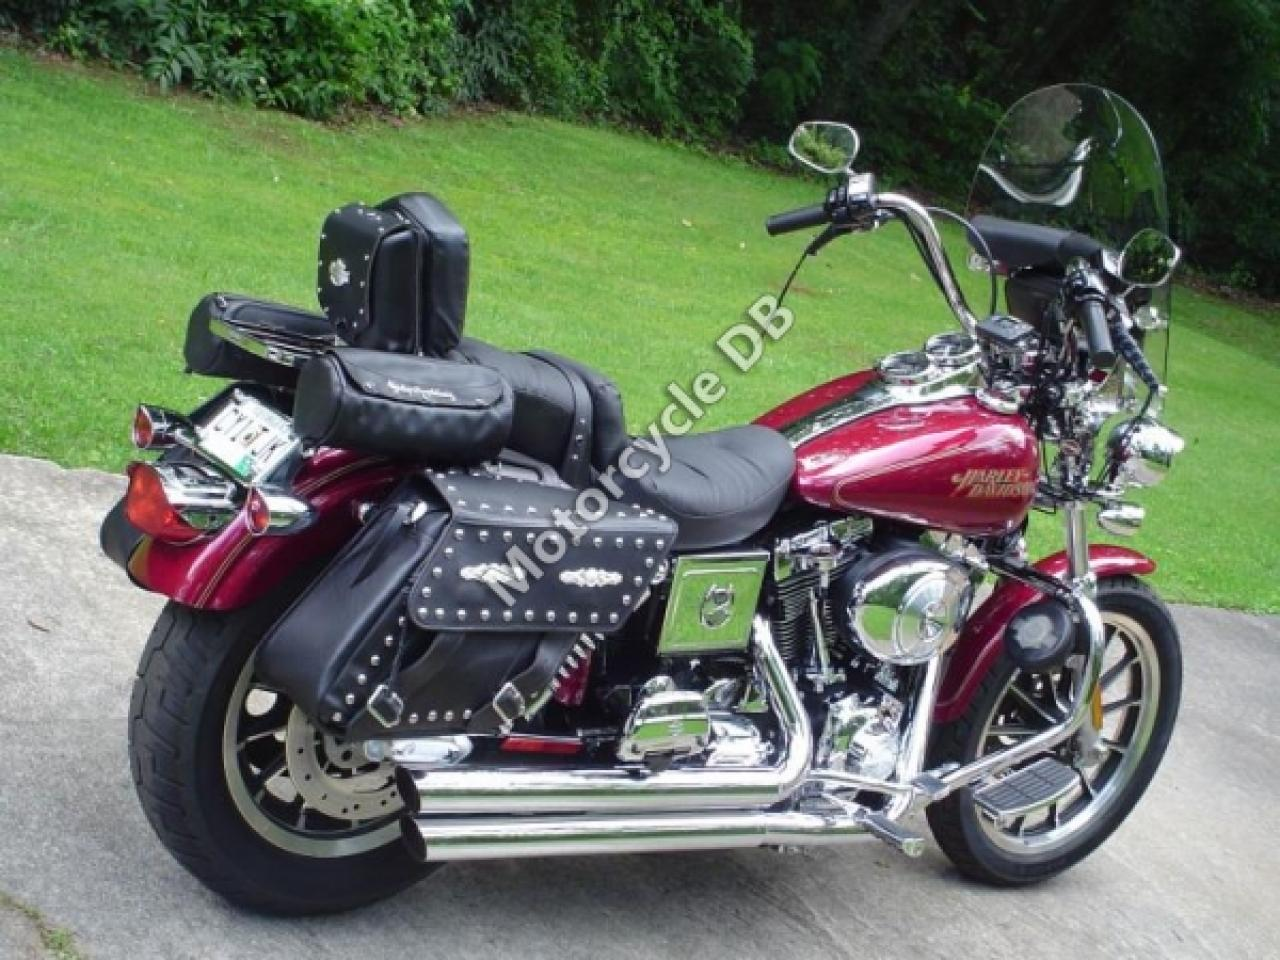 1994 harley davidson 1340 low rider convertible moto zombdrive com. Black Bedroom Furniture Sets. Home Design Ideas